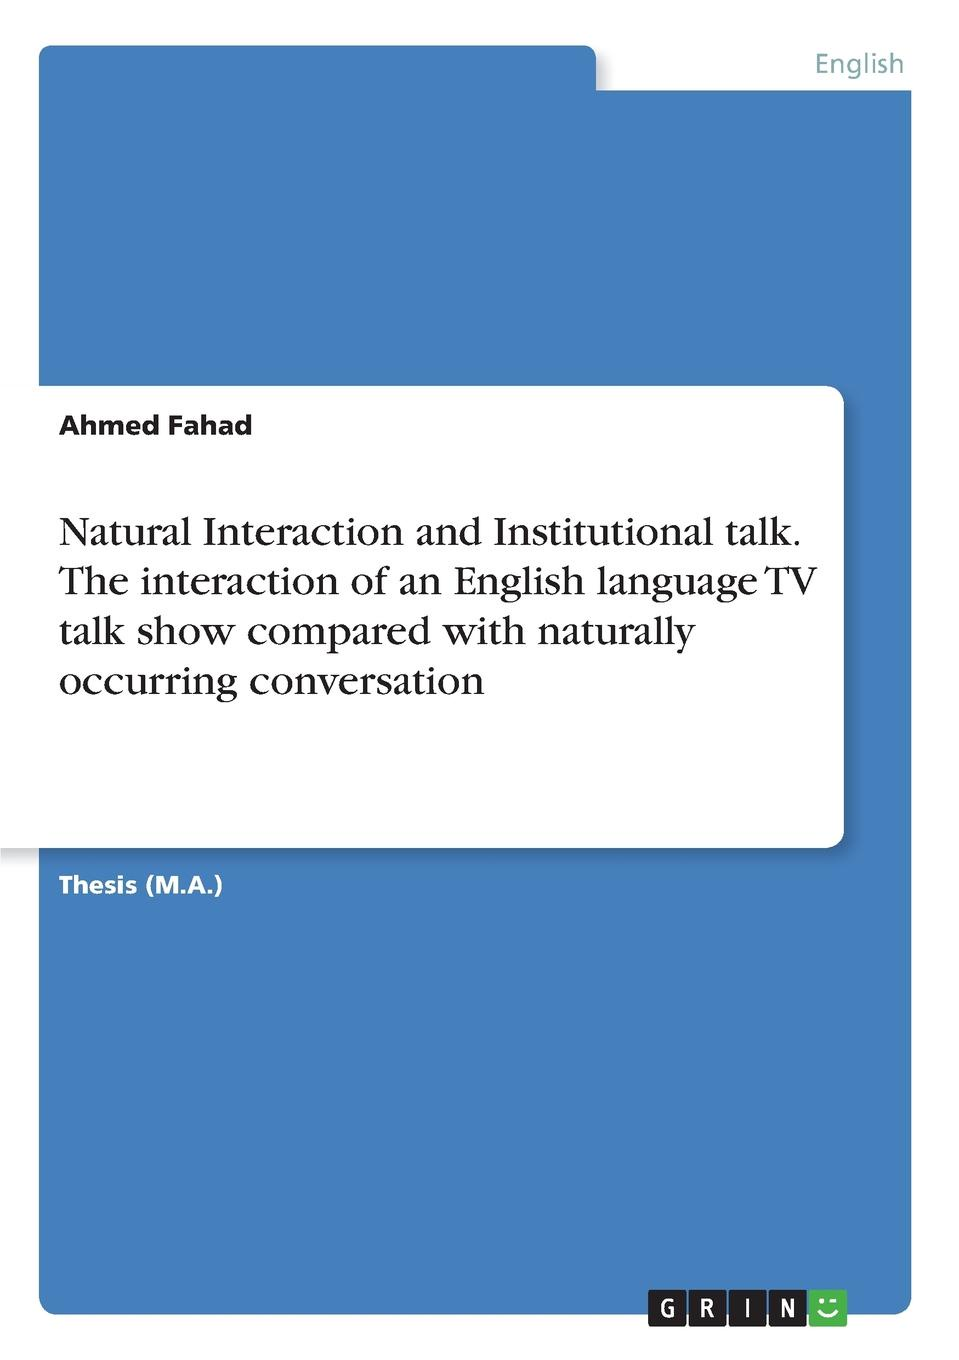 Ahmed Fahad Natural Interaction and Institutional talk. The interaction of an English language TV talk show compared with naturally occurring conversation conversation analysis